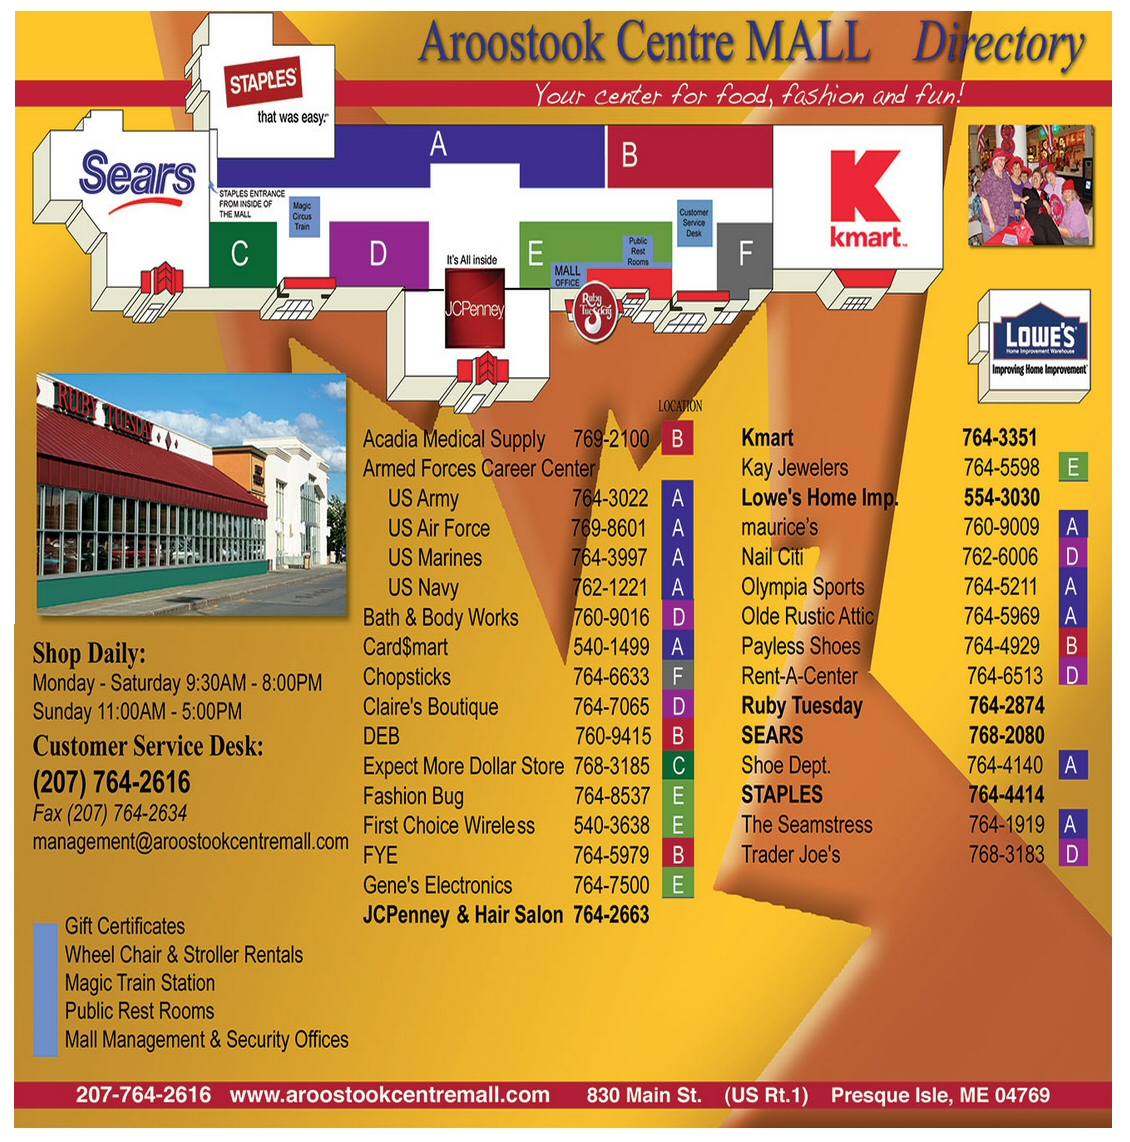 Aroostook Centre Mall map